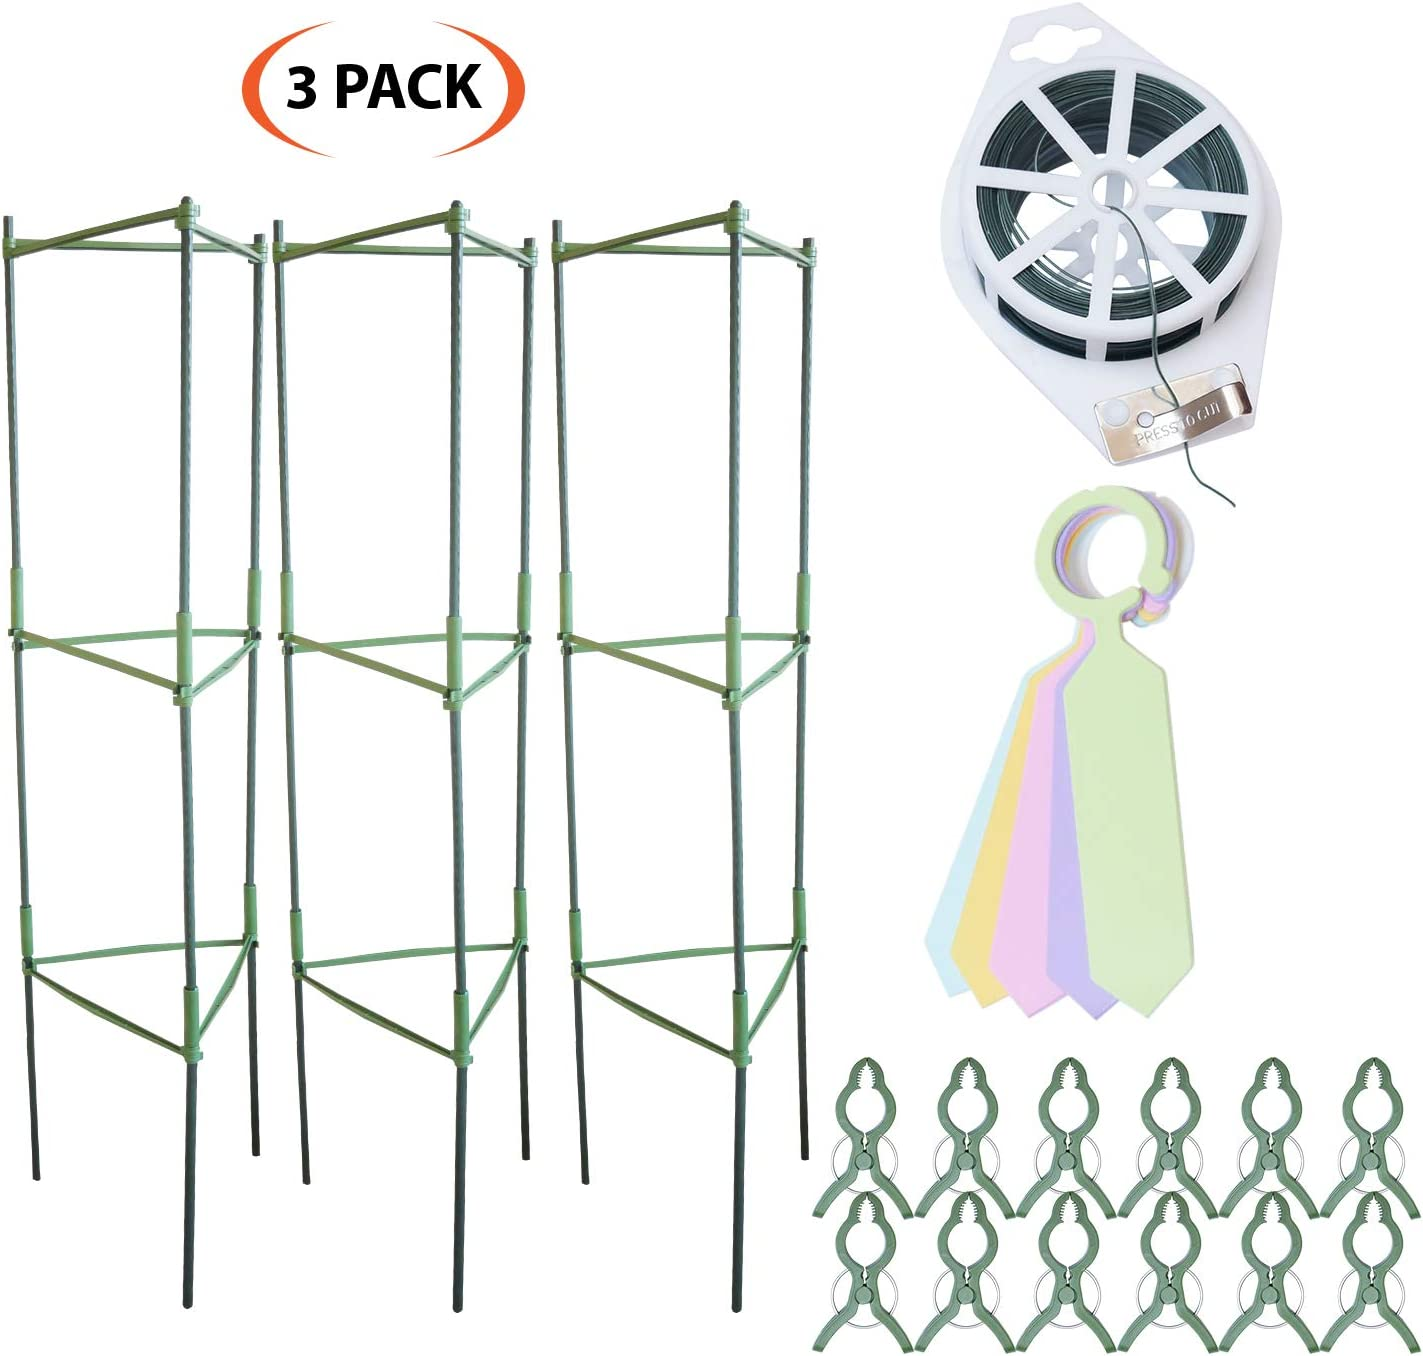 Grow Your Pantry Tomato Cages from 3 Pack of Strong and Durable Plant Cages for Growing Vegetables and Fruits with Bonus Plant Clips 100M Twist Tie Device